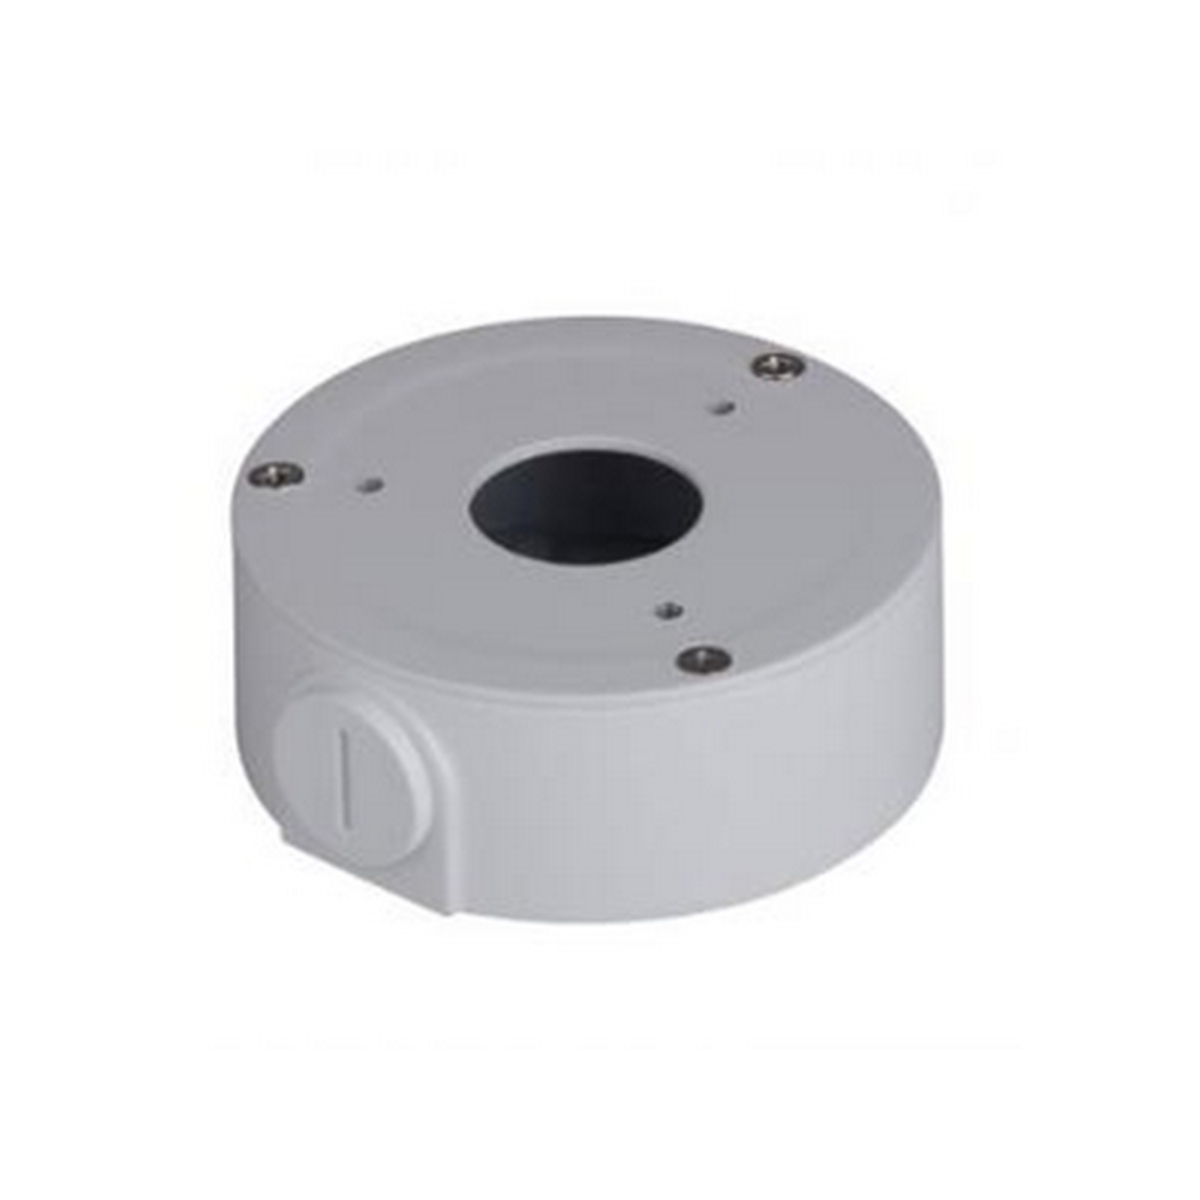 Dahua Material:  Aluminum&SECC,Color: White,Dimension: f90mm*34mm,Weight:0.22Kg            